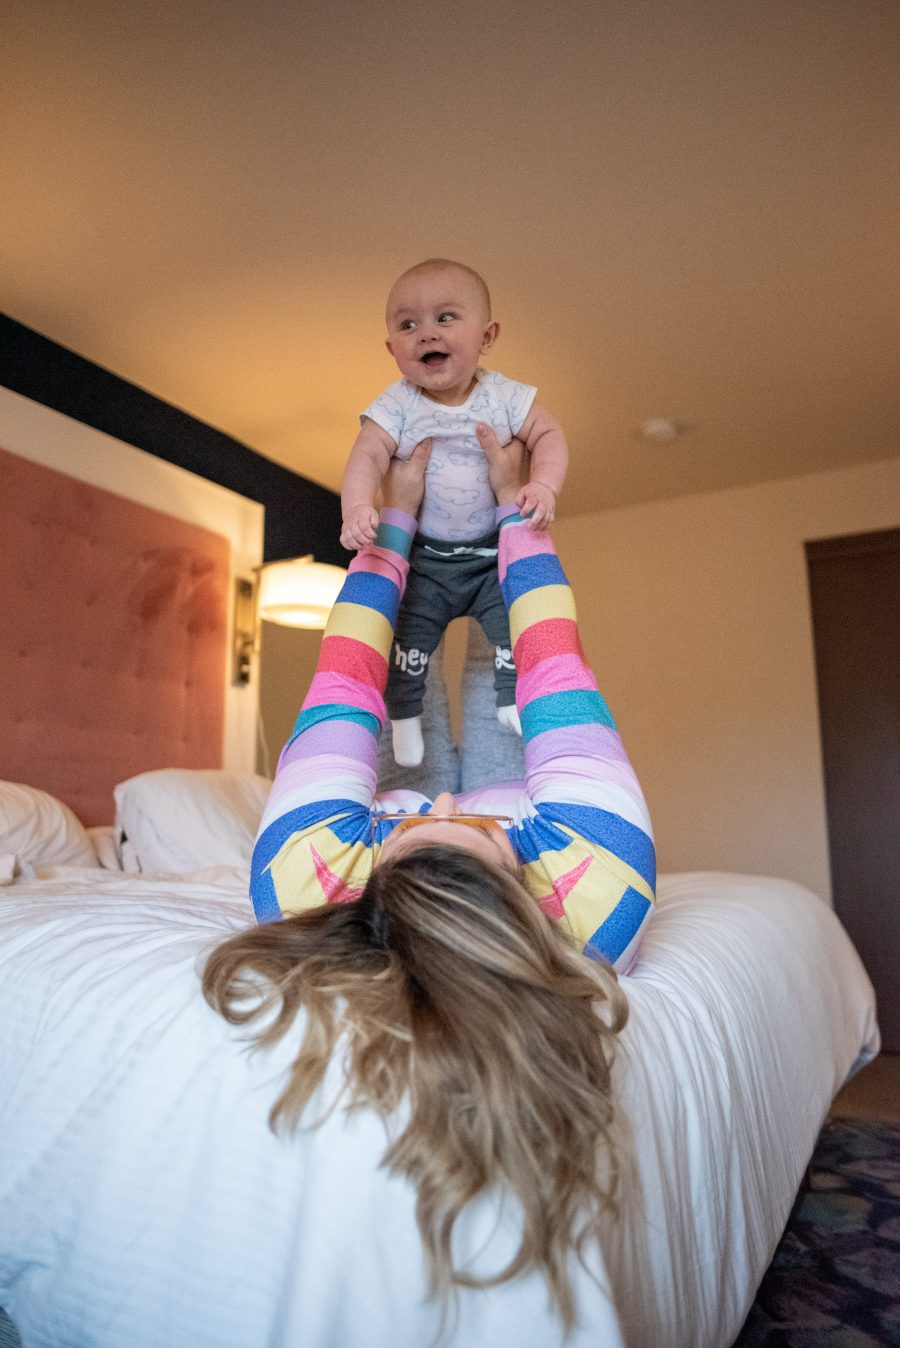 Our Stay at Hotel Indigo Mount Pleasant